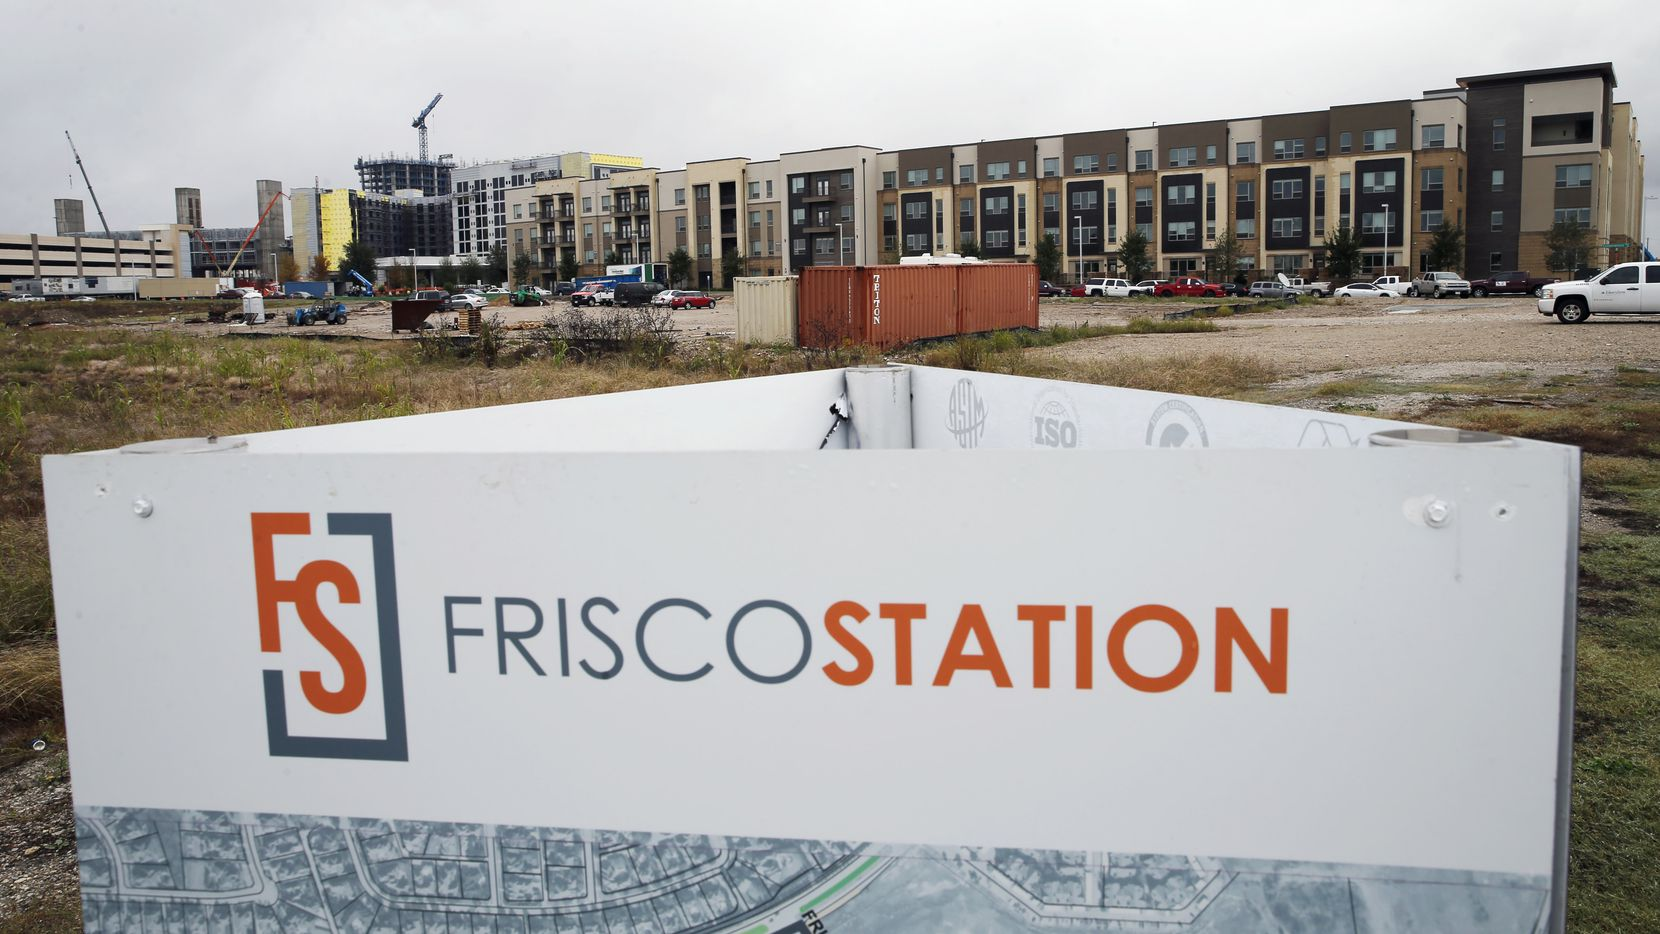 Up to 2,400 apartments are planned for Frisco Station.